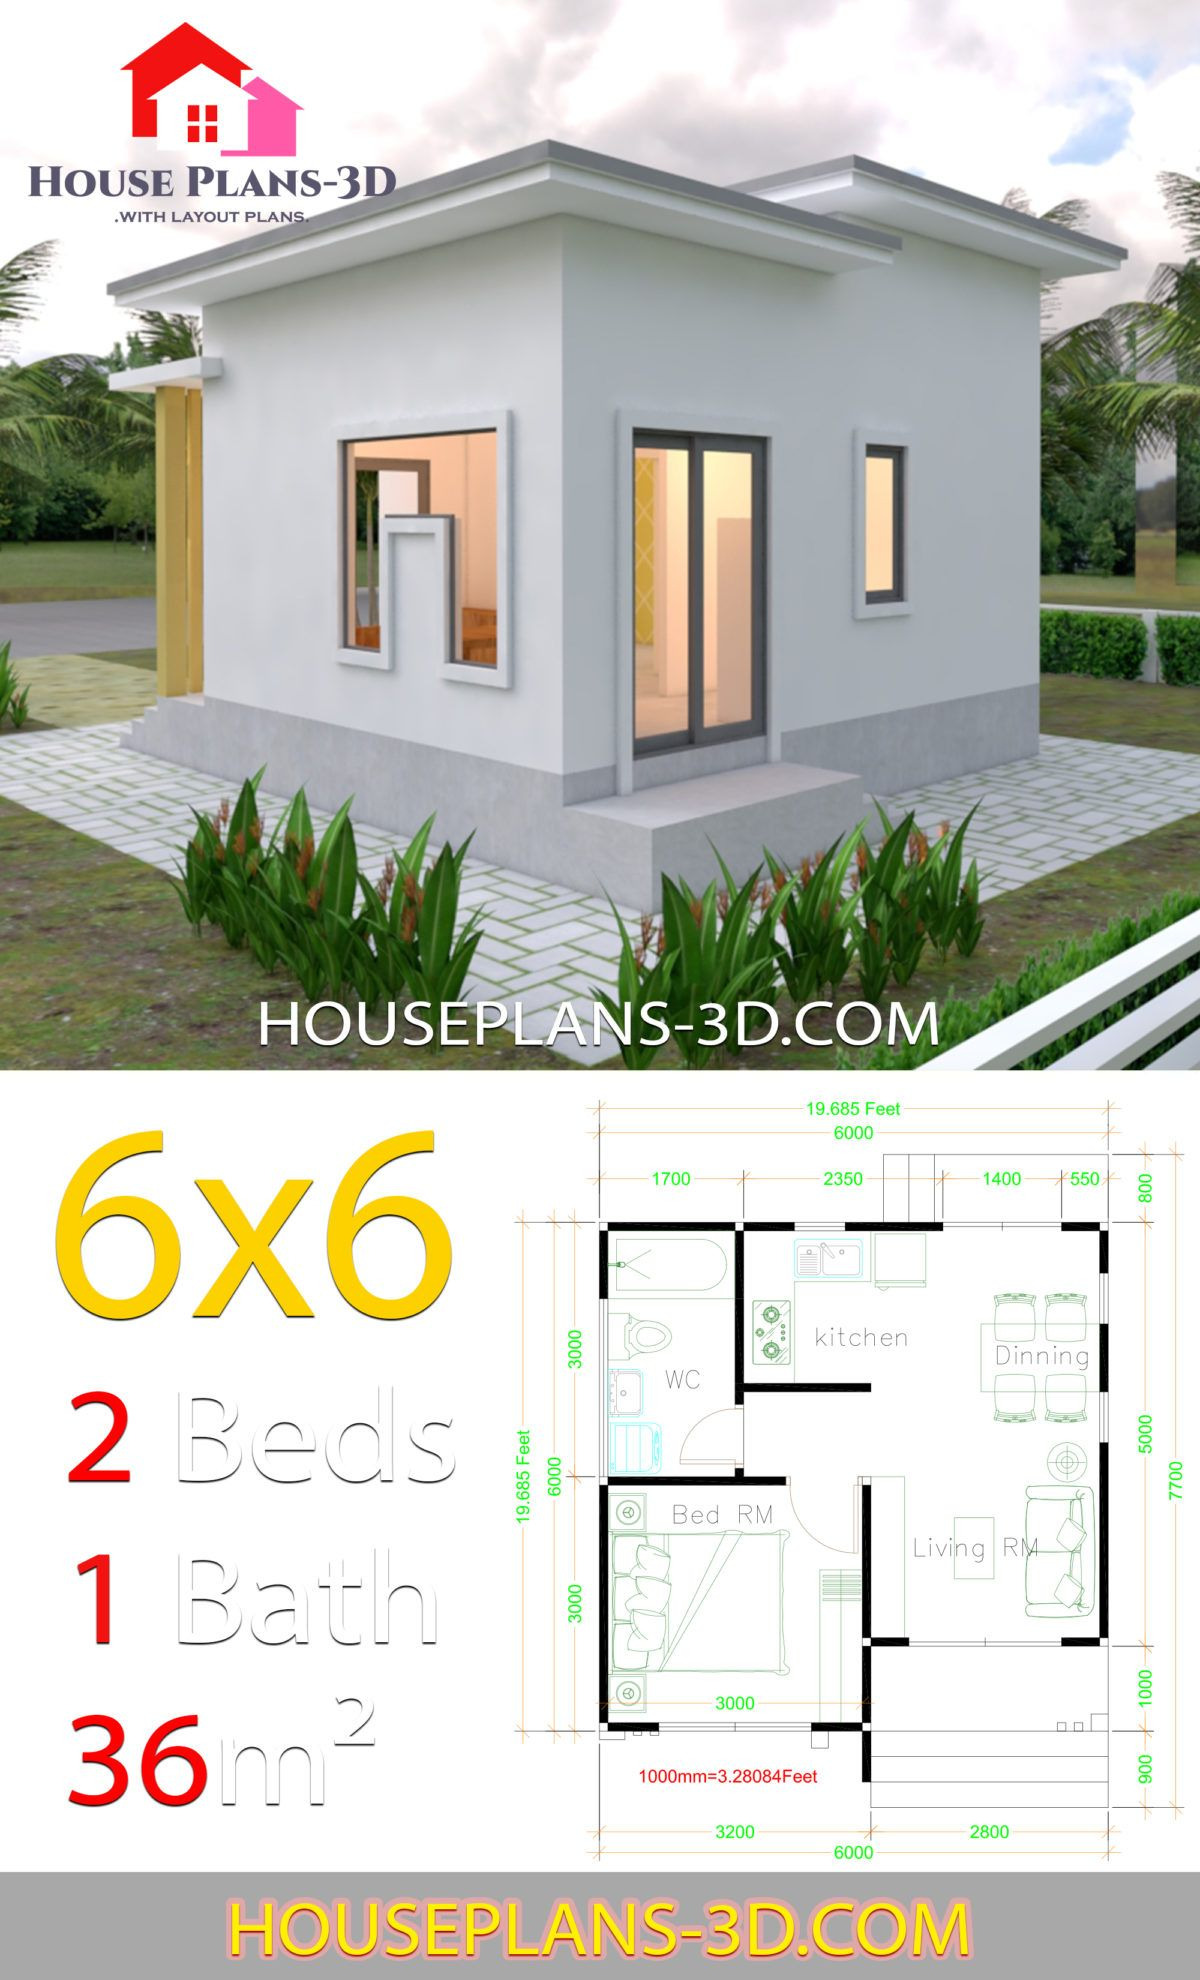 Flat Roof House Plans Design Awesome House Plans 6x6 with E Bedrooms Flat Roof House Plans 3d